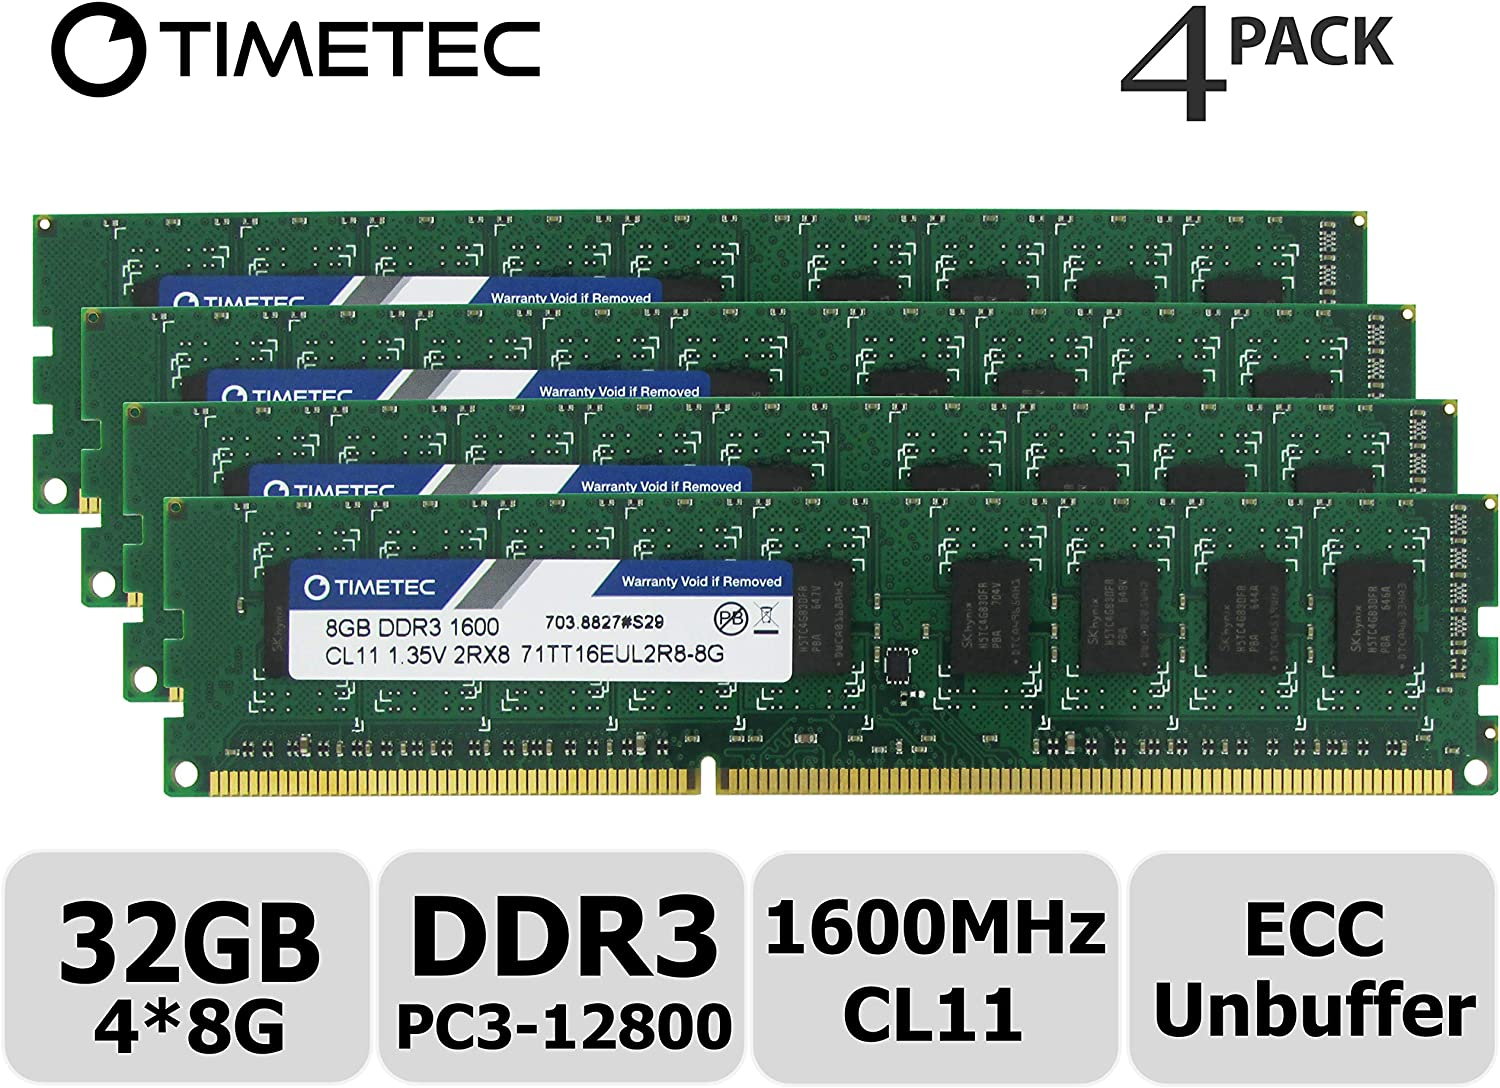 PARTS-QUICK Brand 8GB DDR3 Memory Upgrade for Intel DX79TO Motherboard PC3-12800E ECC Unbuffered DIMM 240 pin 1600MHz RAM